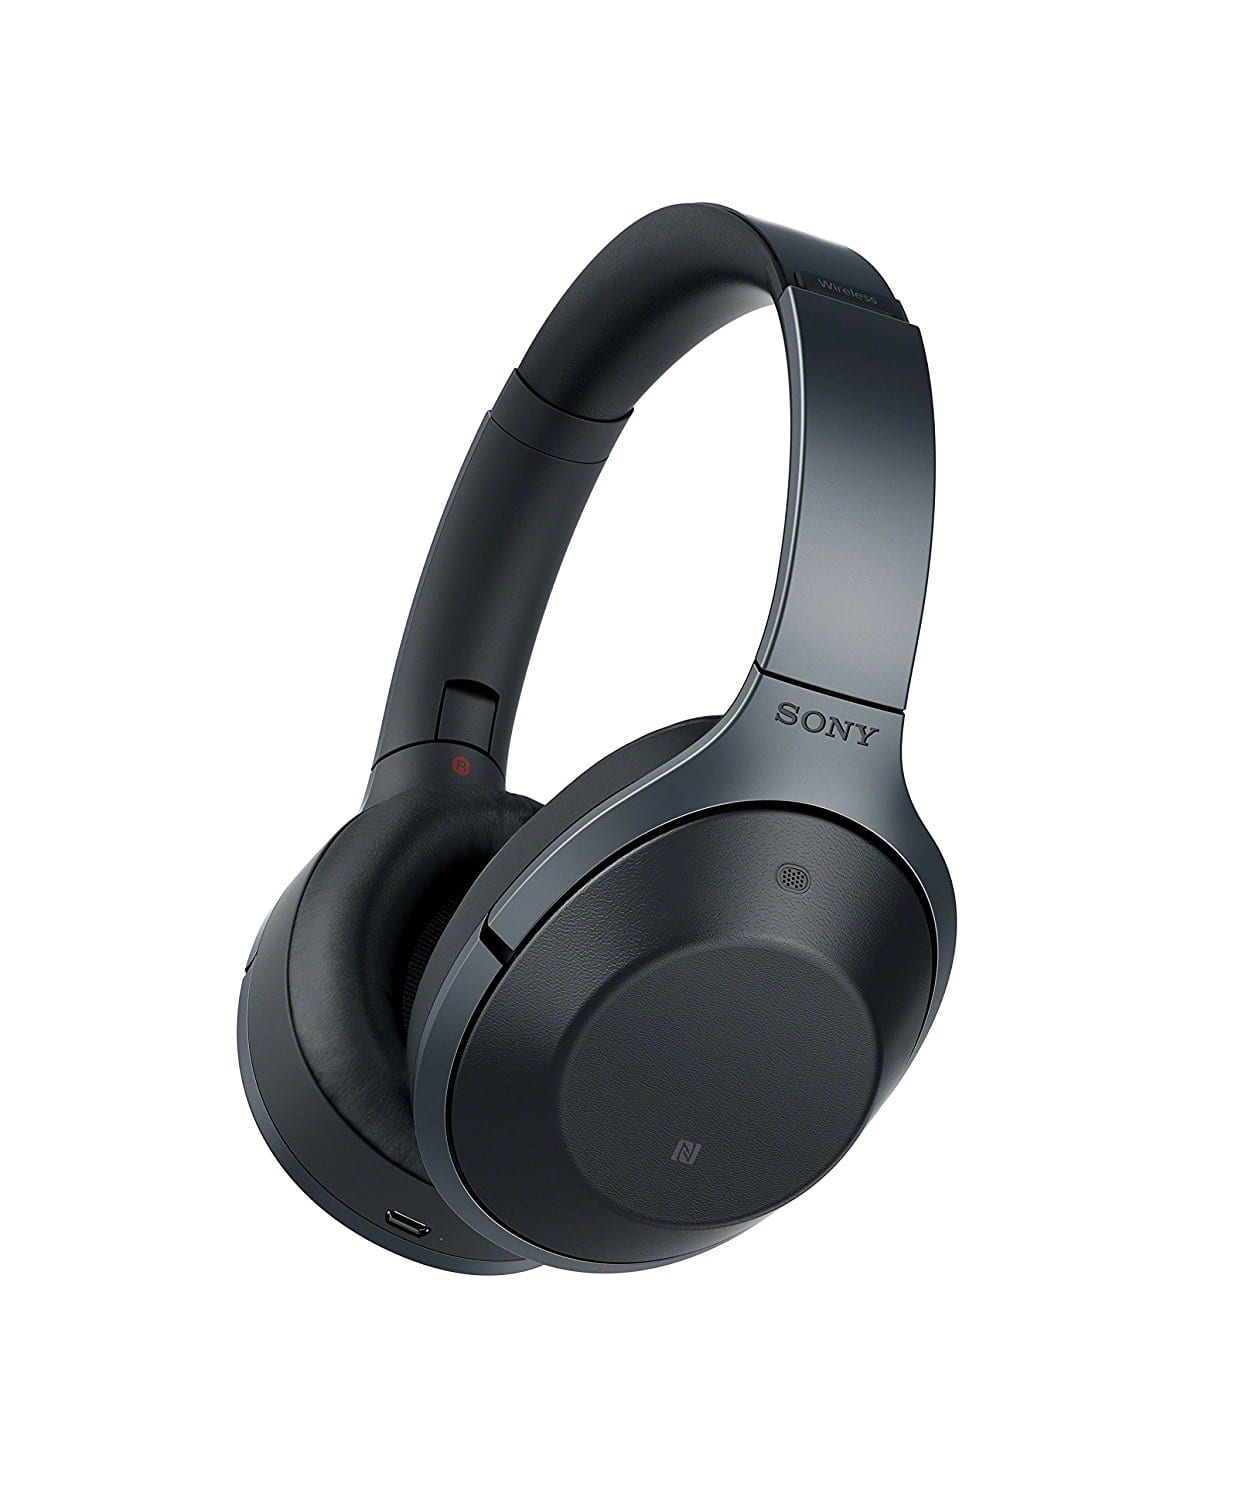 Sony MDR1000X/B noise-cancelling headphones ($298 on Amazon; $299.99 on Best Buy)